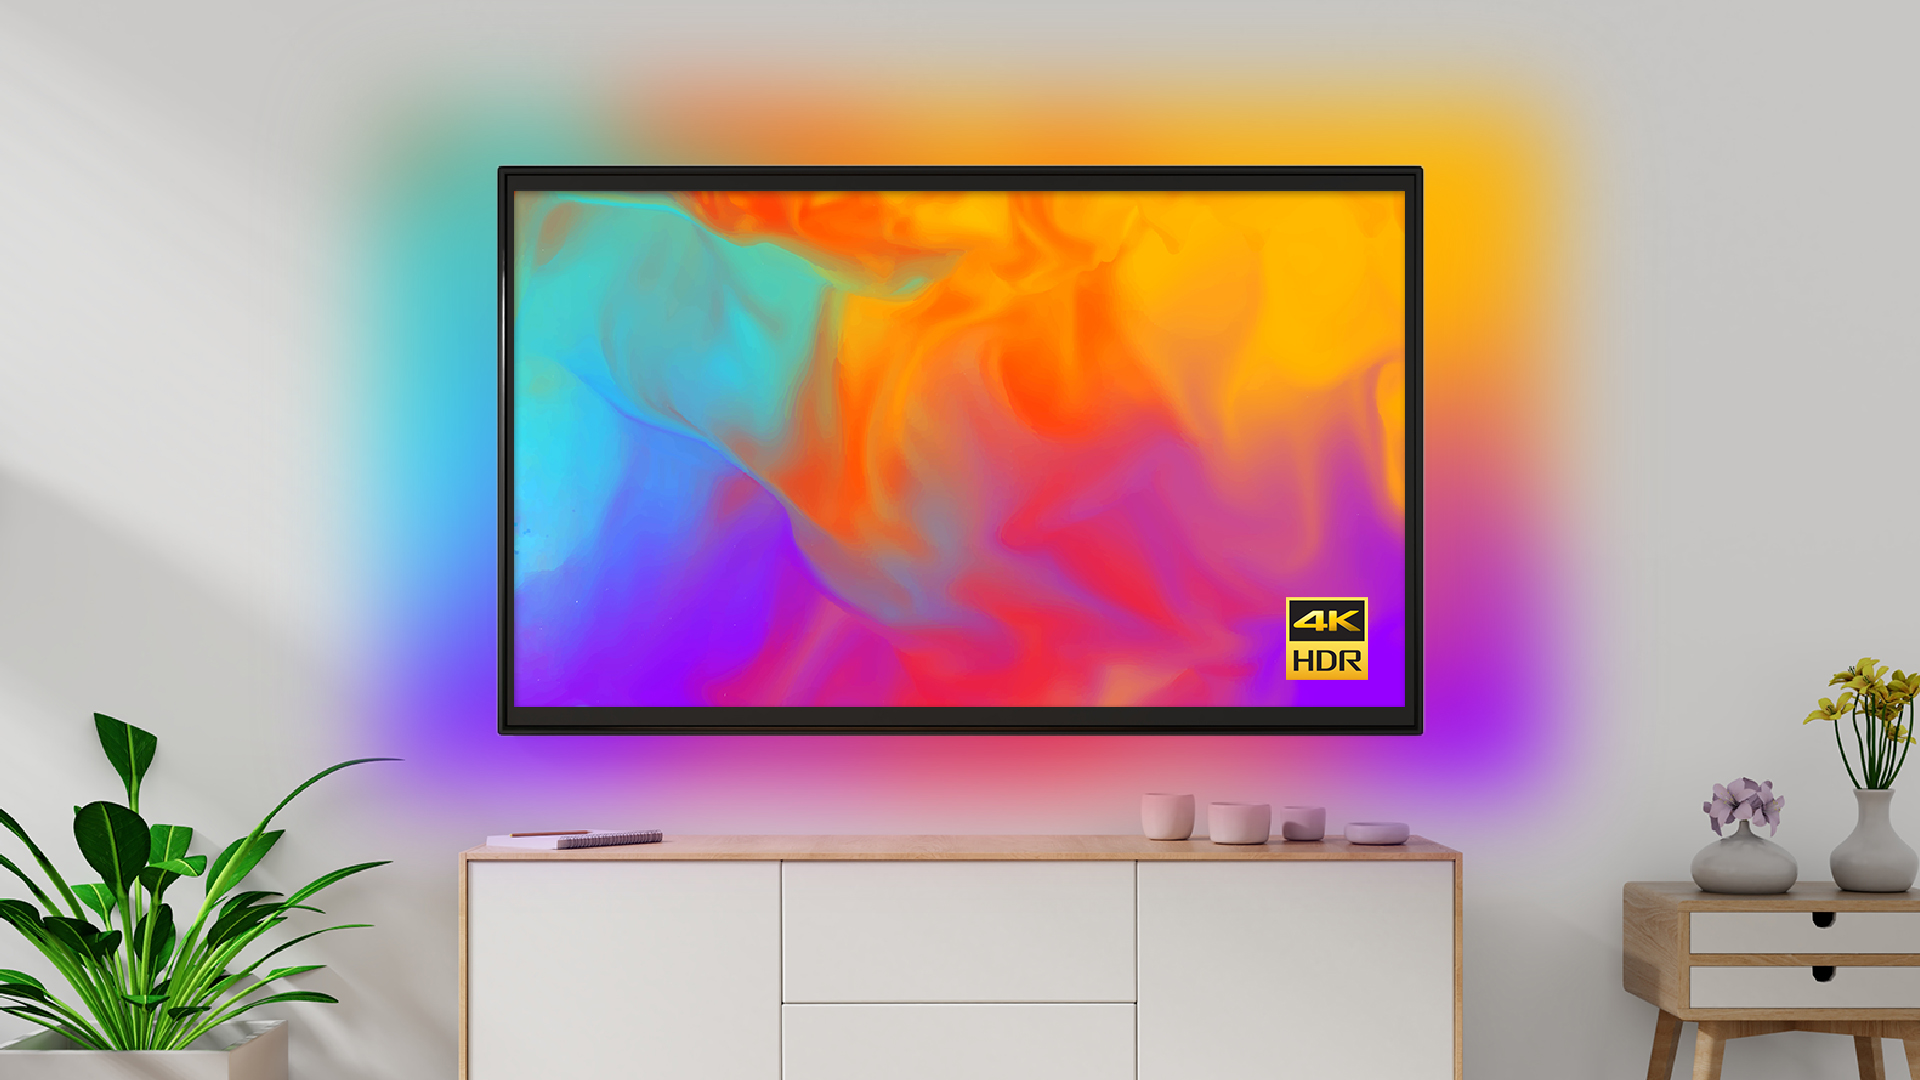 Ambilight 4k (UHD) HDR - DigitaleWelt.at